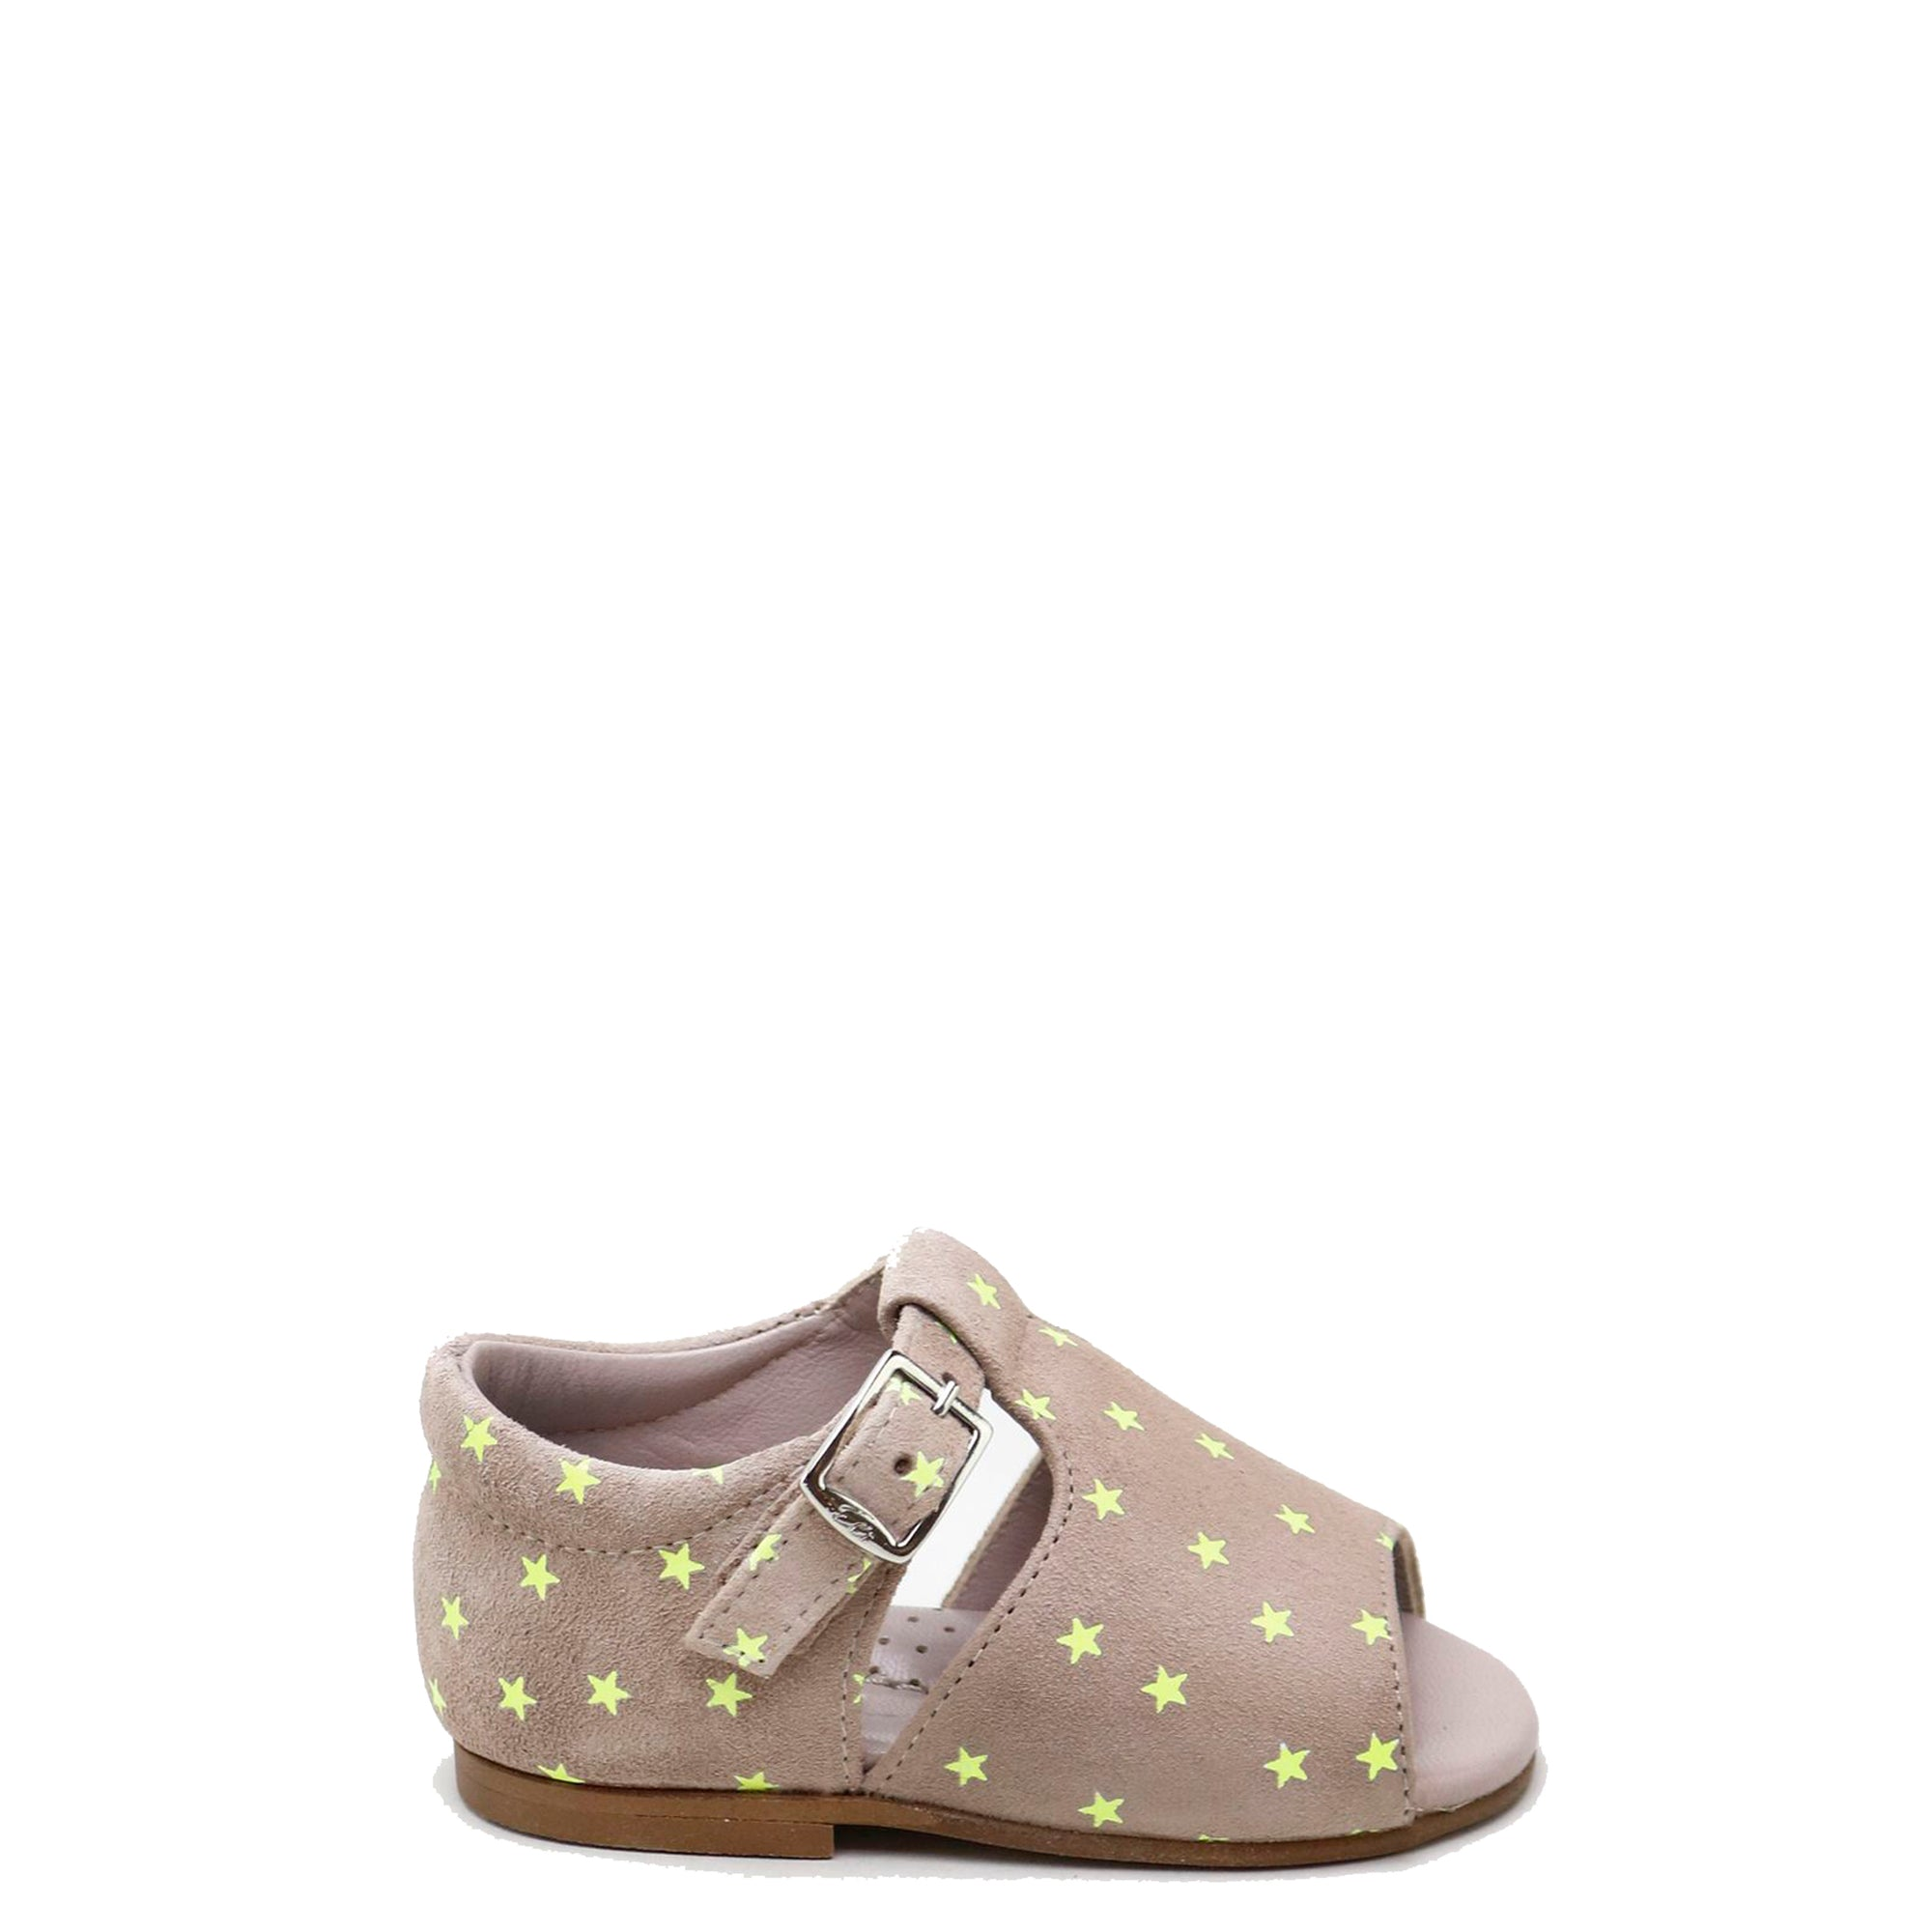 Papanatas Taupe and Neon Star Baby Sandal-Tassel Children Shoes